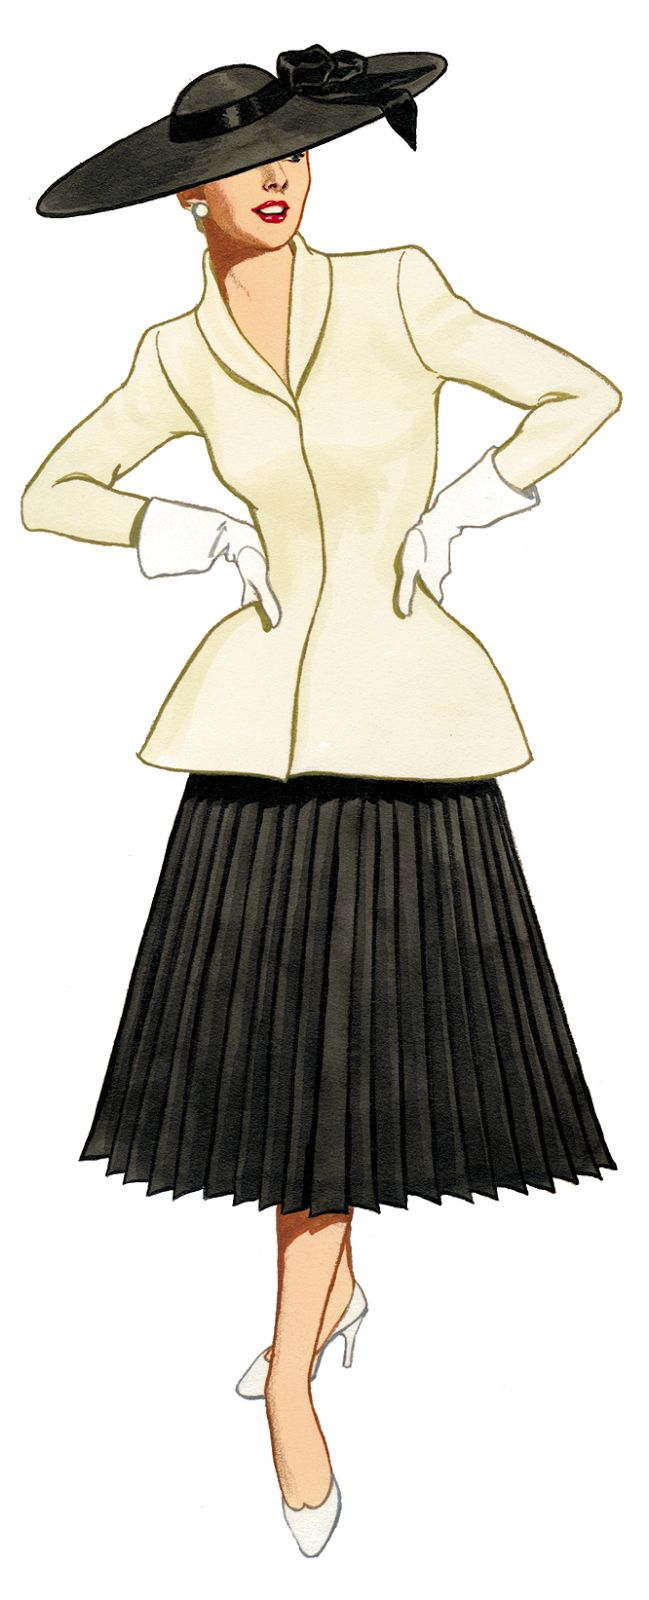 Gorgeus clipart fashion lady For about Pinterest Day Clip